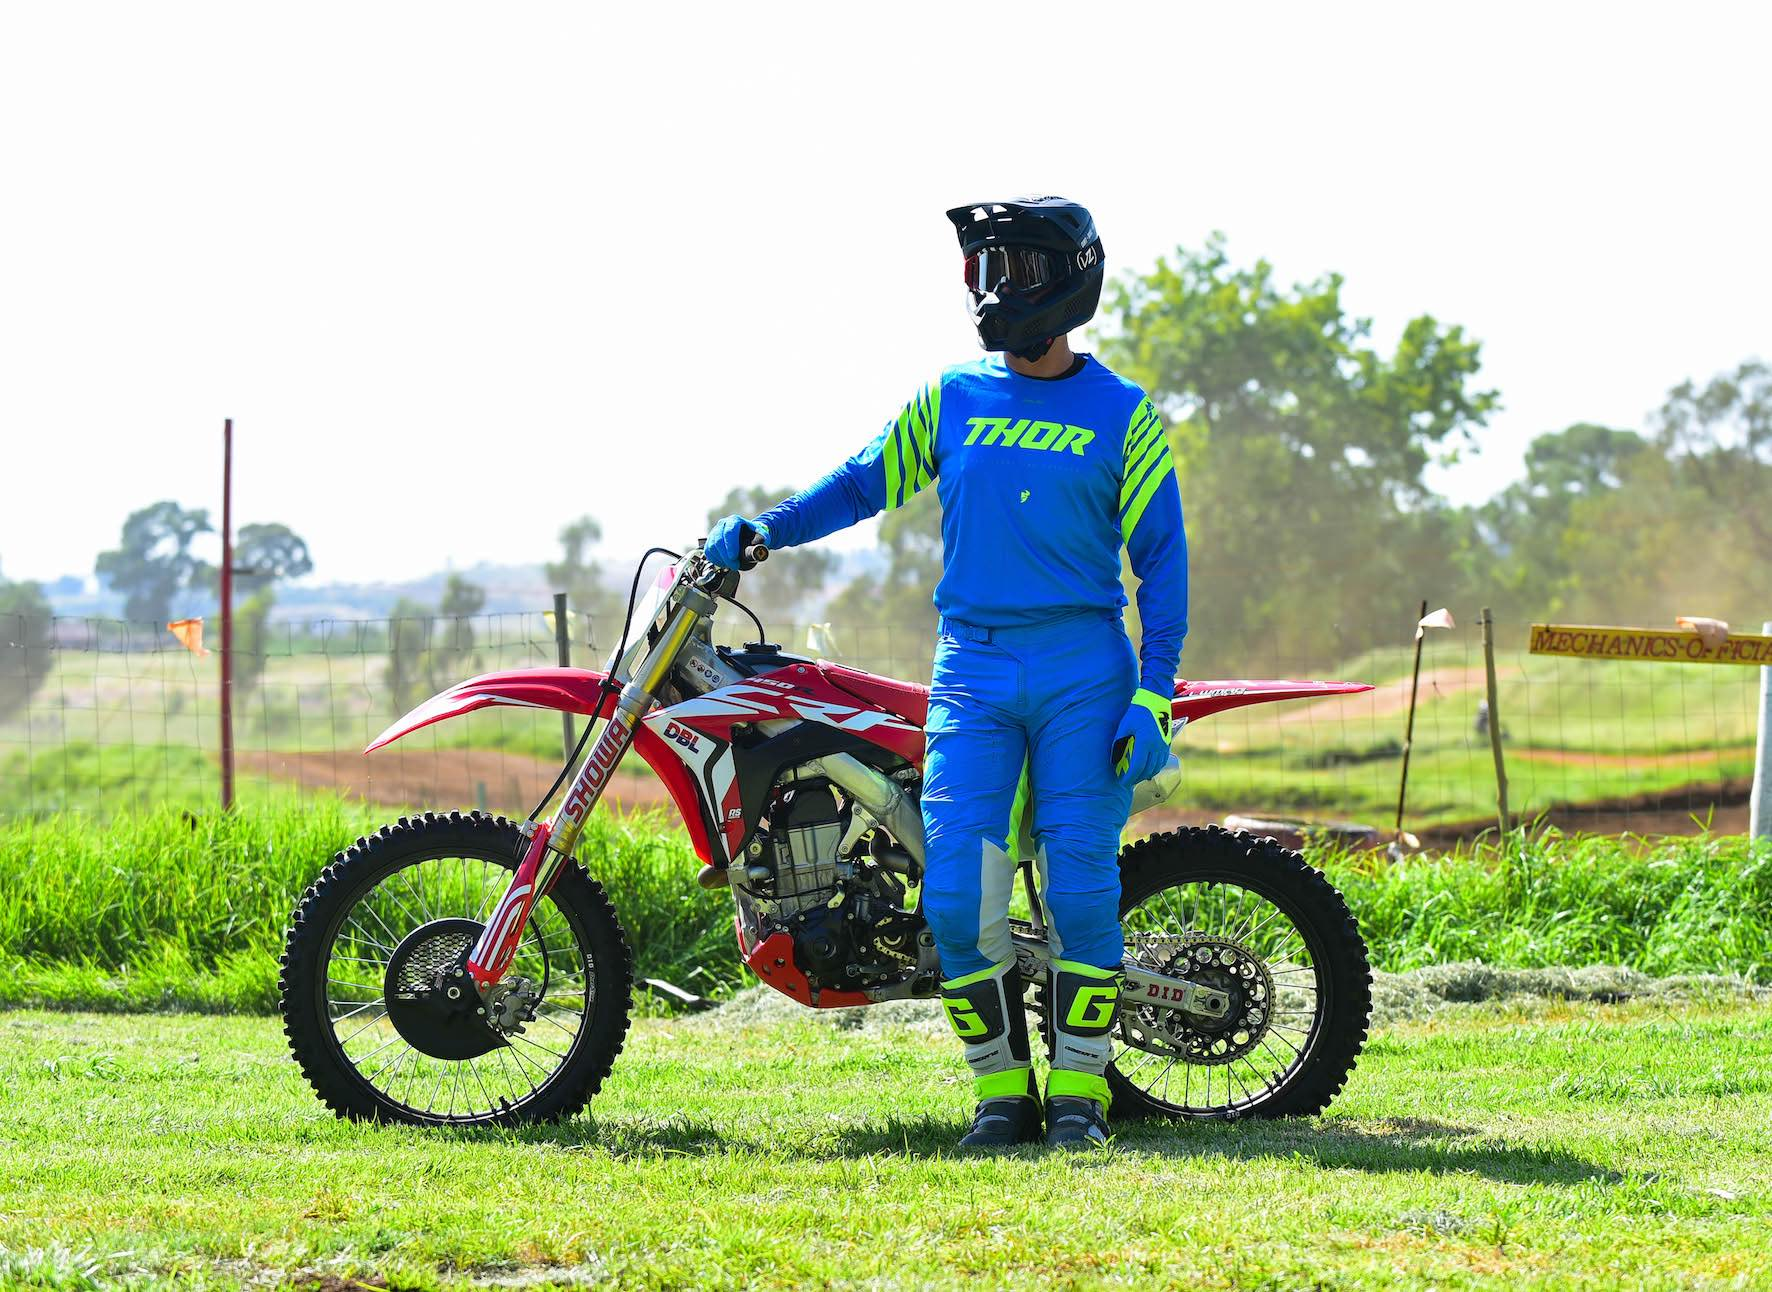 We review the 2020 Thor MX Prime Pro Motocross Racewear